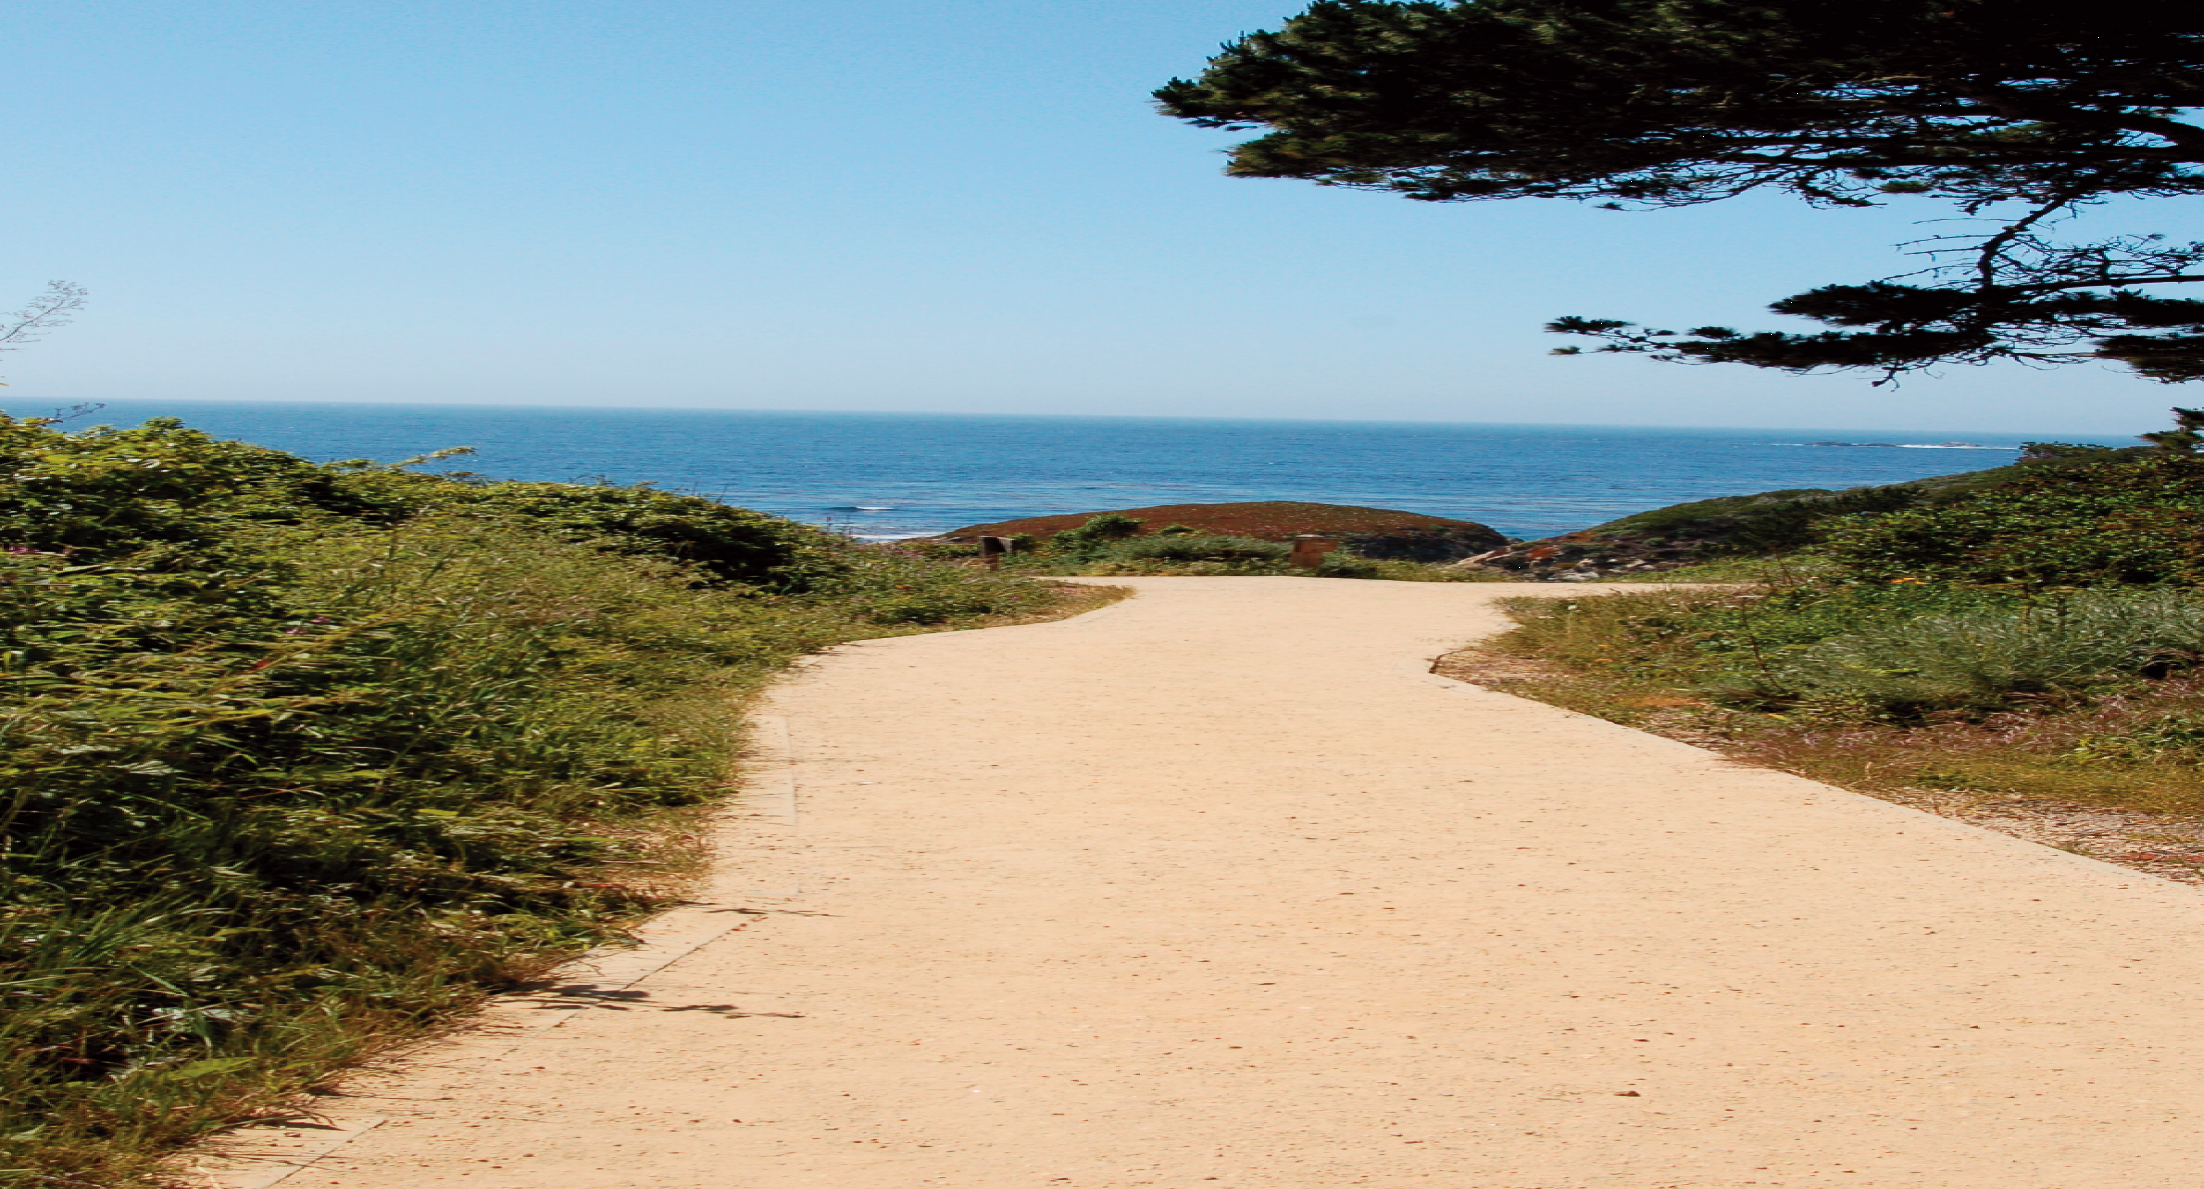 Path Fines for Walkways - California Gold